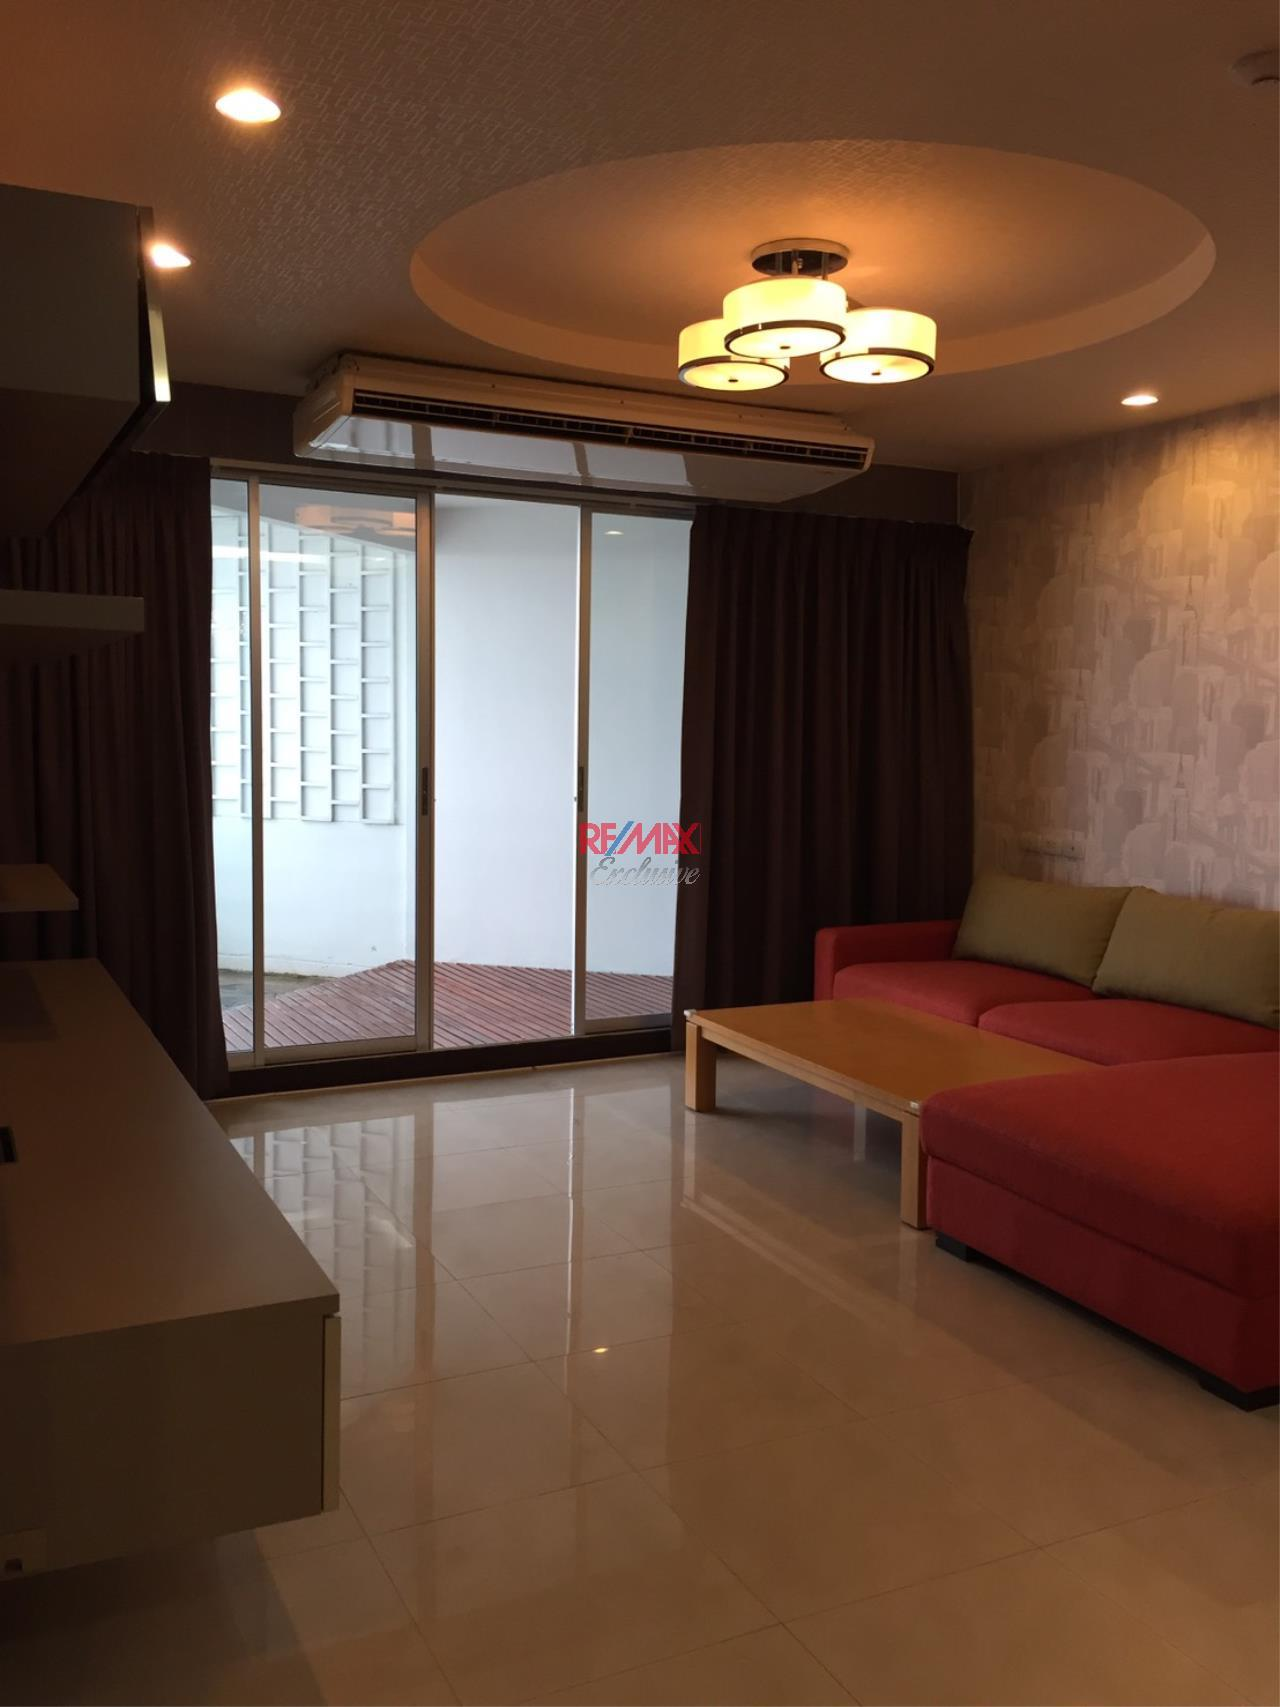 RE/MAX Exclusive Agency's NS Tower Central City Bangna, 118 Sqm. 1 Bedroom, Fully-Furnished, AMAZING VIEW for RENT AND SALE !!! 12